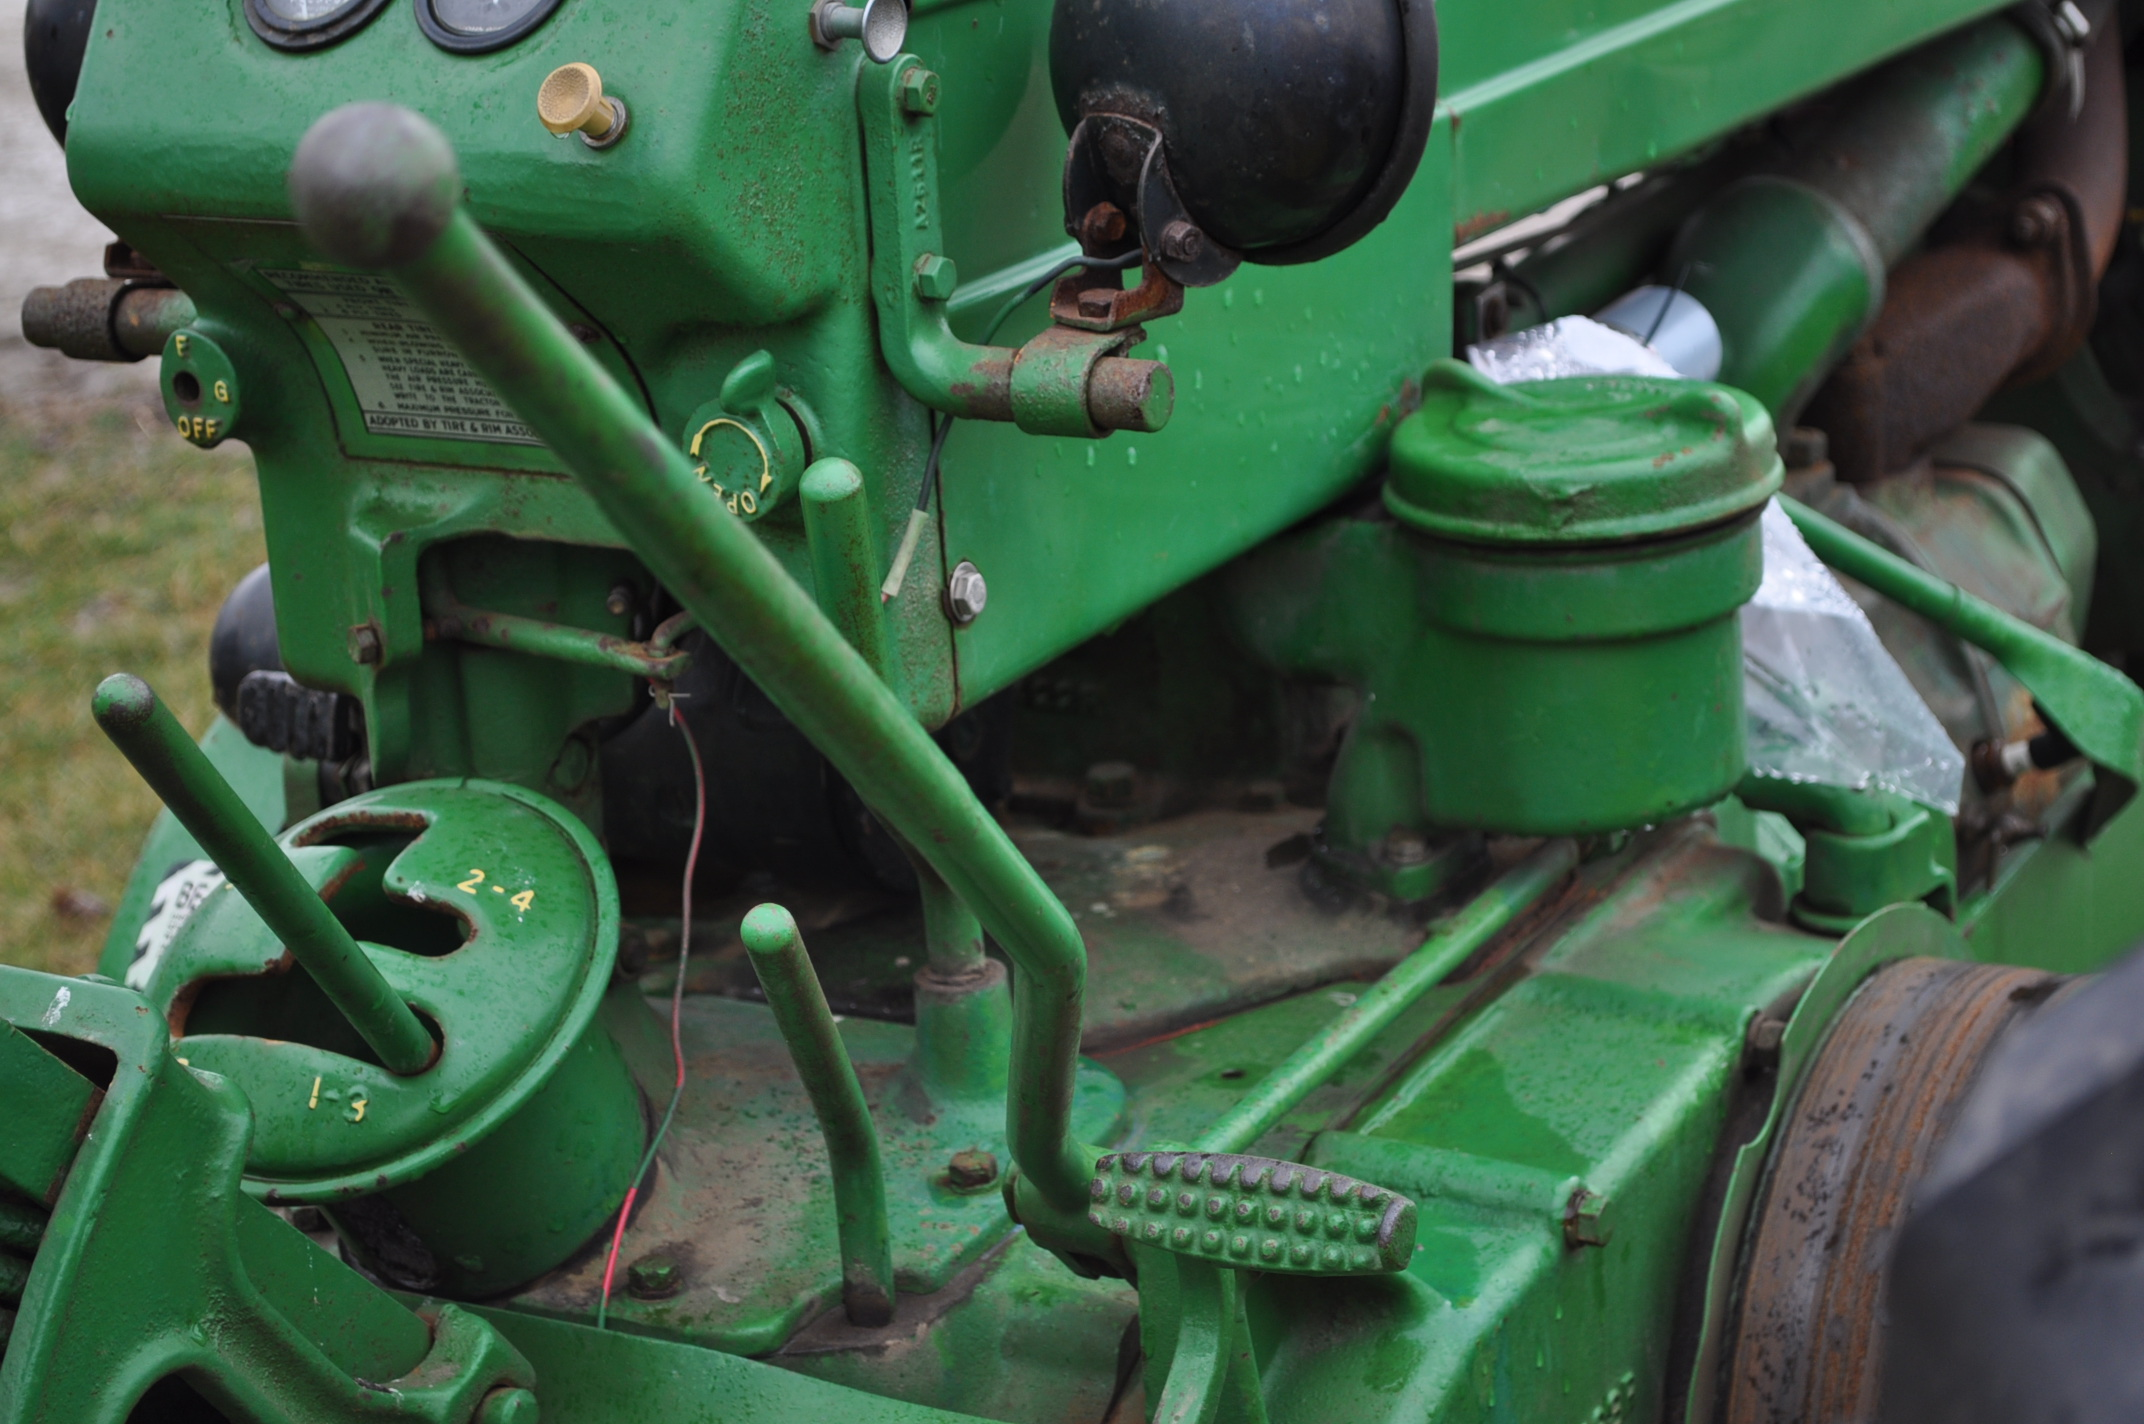 1942 John Deere Styled A, New 12.4-38 rear tires, narrow front, 540 pto - Image 13 of 15